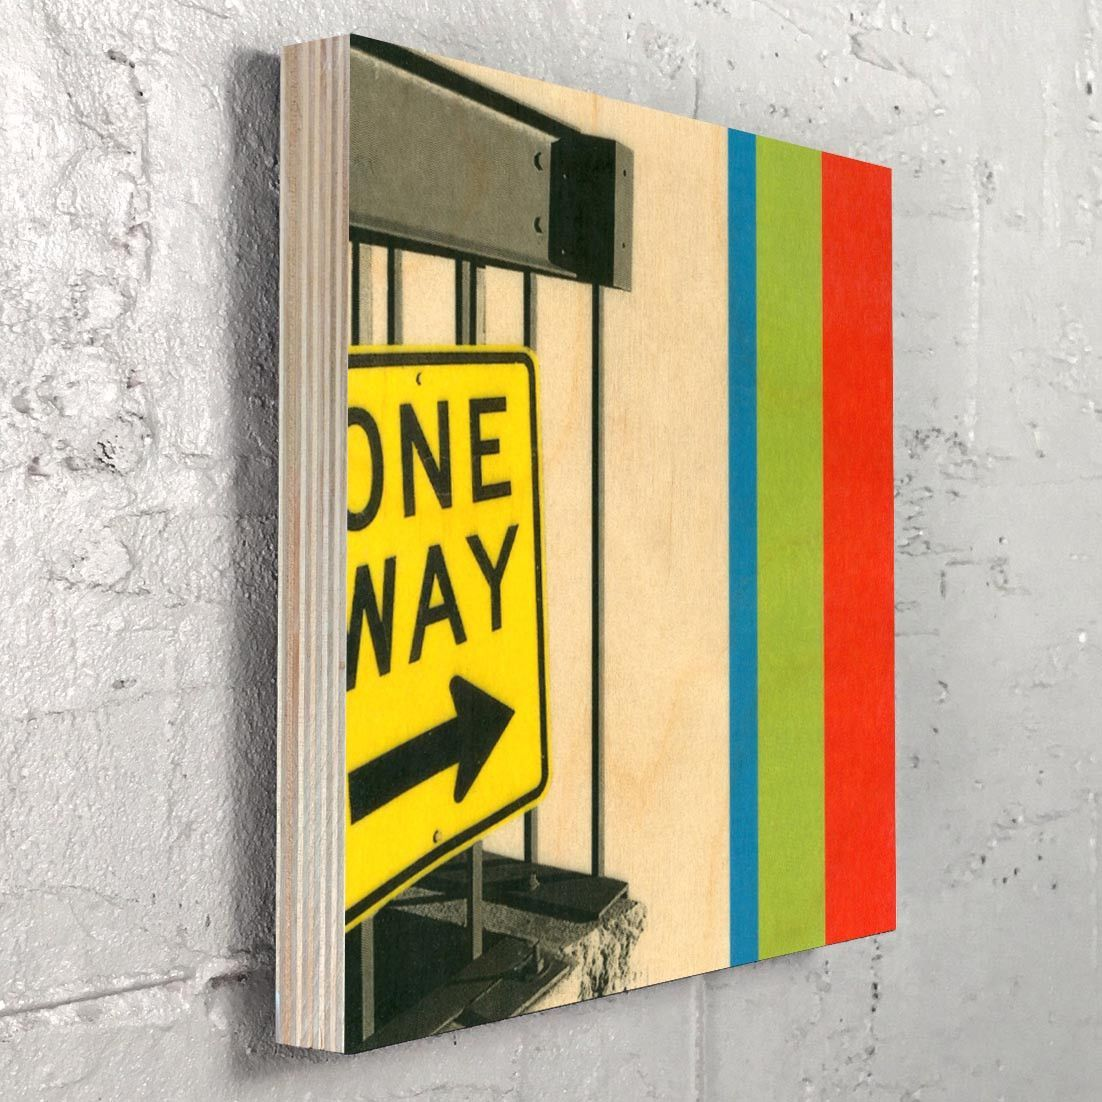 One Way - Graphic Design Street Sign Urban Art Wall Decor | Art we ...